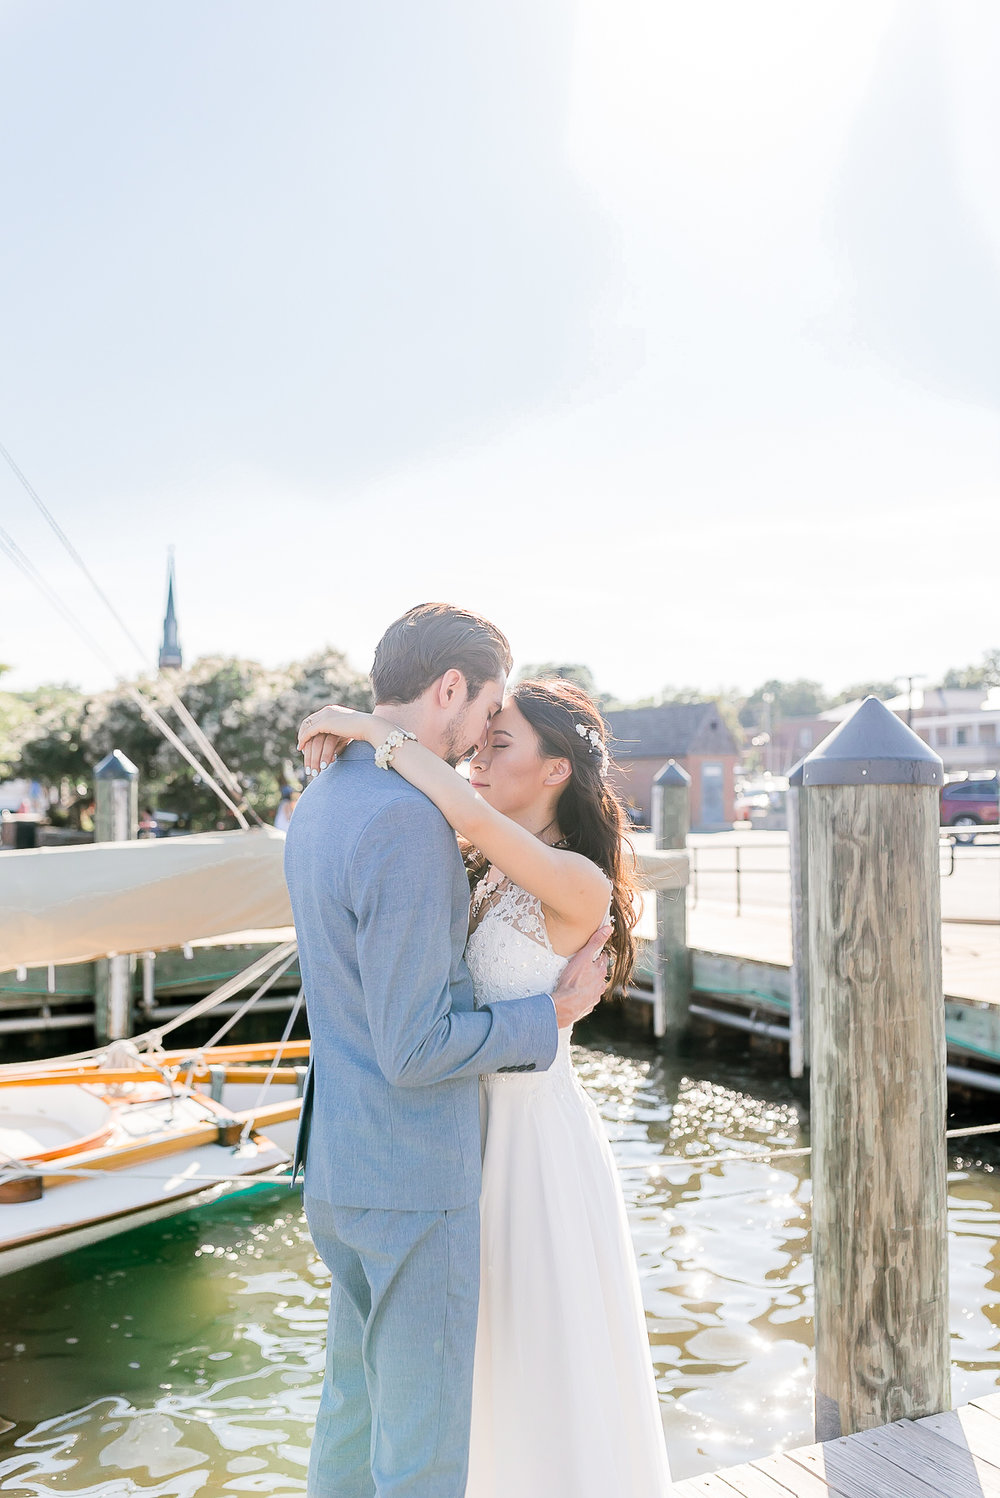 MD-Annapolis-Intimate-Wedding-Elopement-Waterfront-Bride-Groom-Portraits-39.jpg